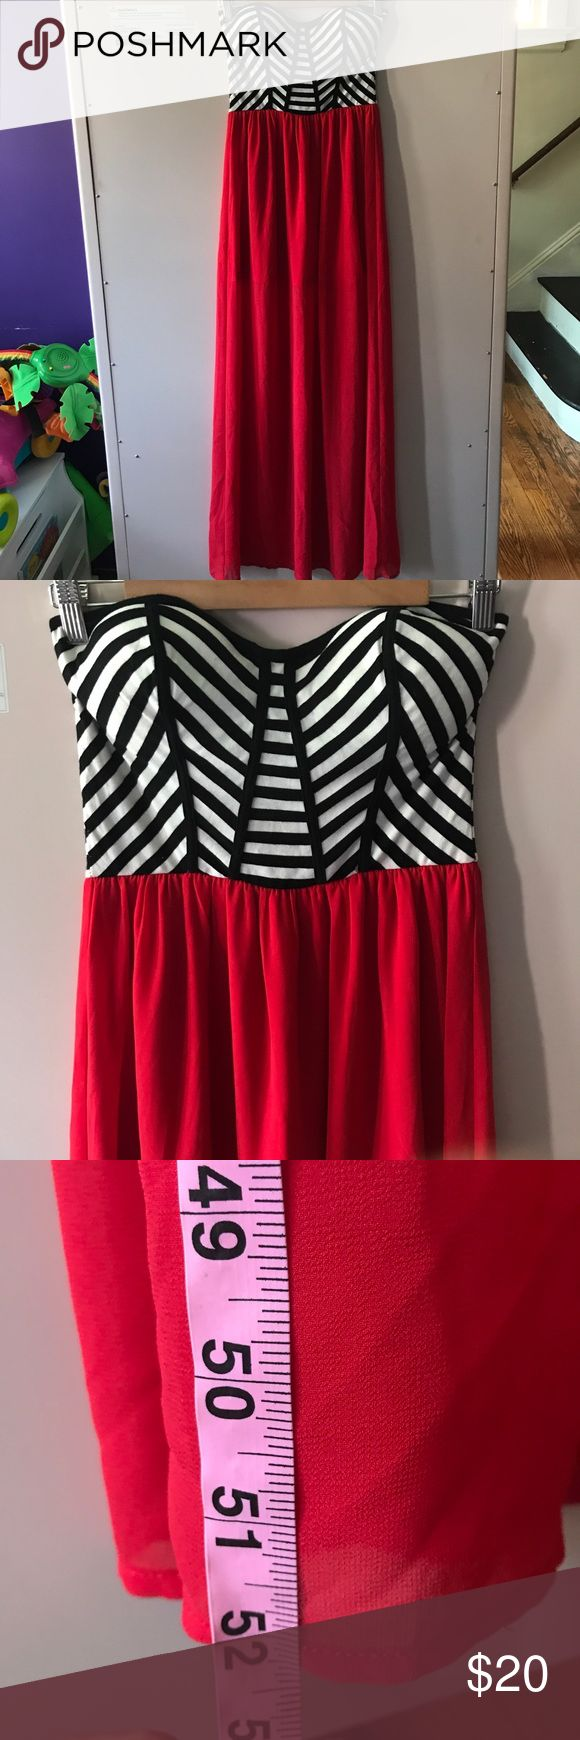 Strapless maxi dress Striped black and white strapless top with red bottom maxi dress. Sheer red bottom over a shorter dress underneath! Measurements in pictures. Gold zipper in the back Love Chesley Dresses Maxi